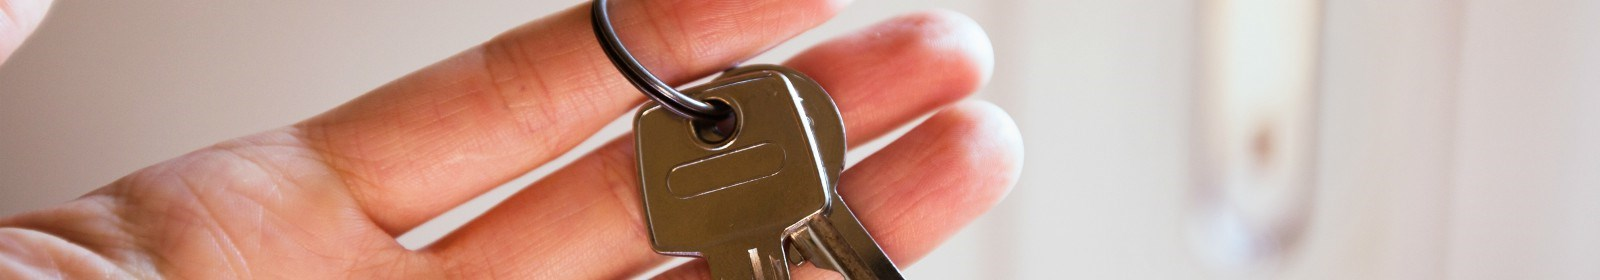 Southern Suburbs apartment rental rates decline by 36%